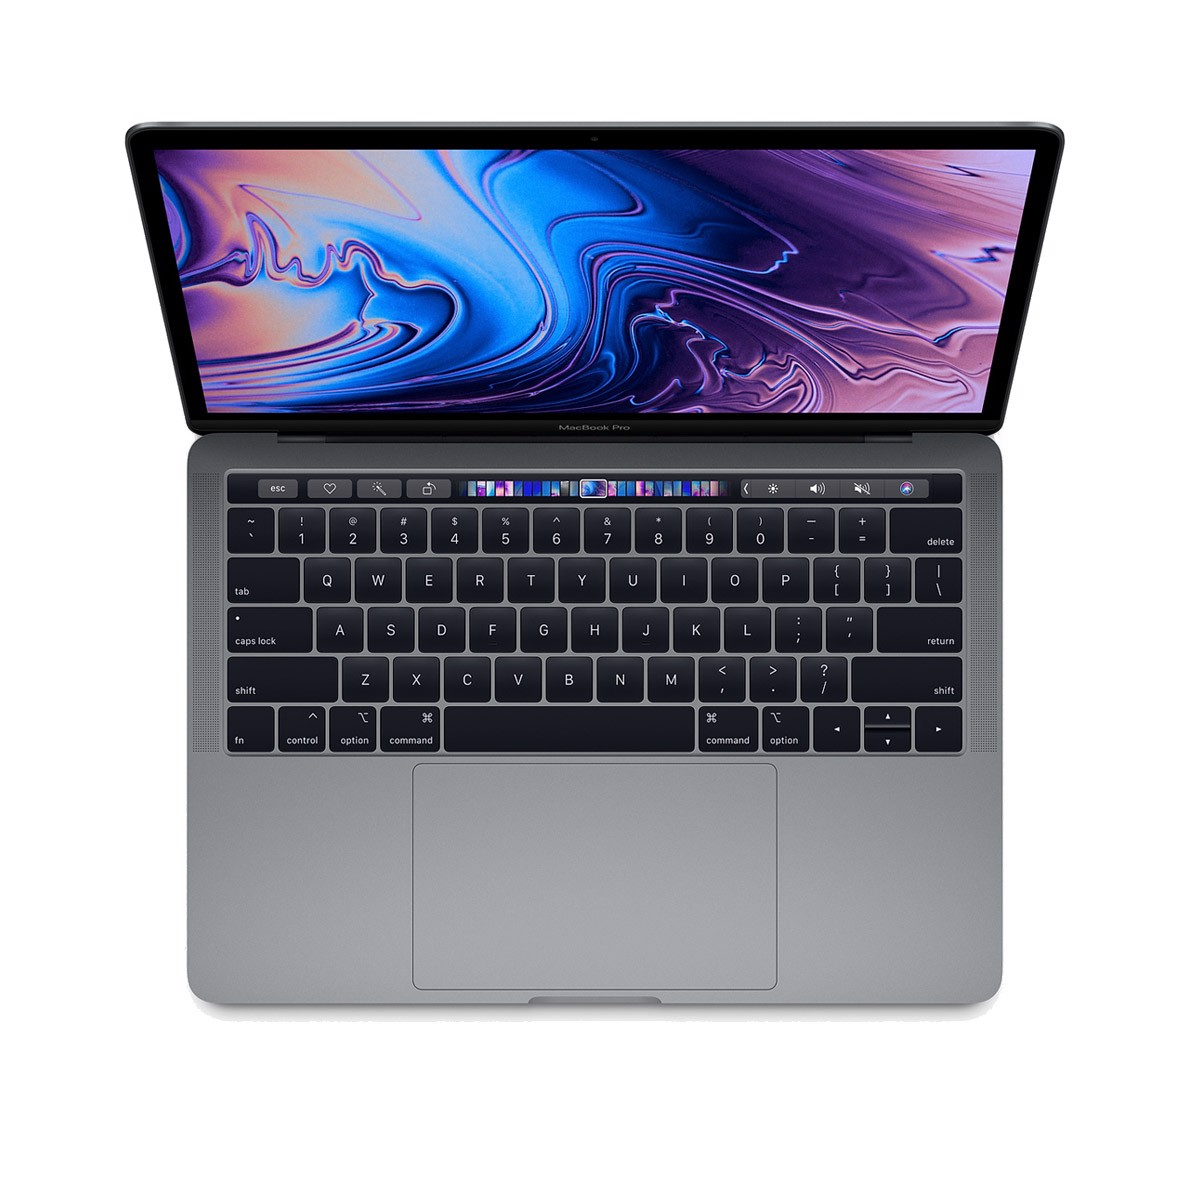 Macbook Pro 13 inch 2019 512GB SSD Space Gray - Silver